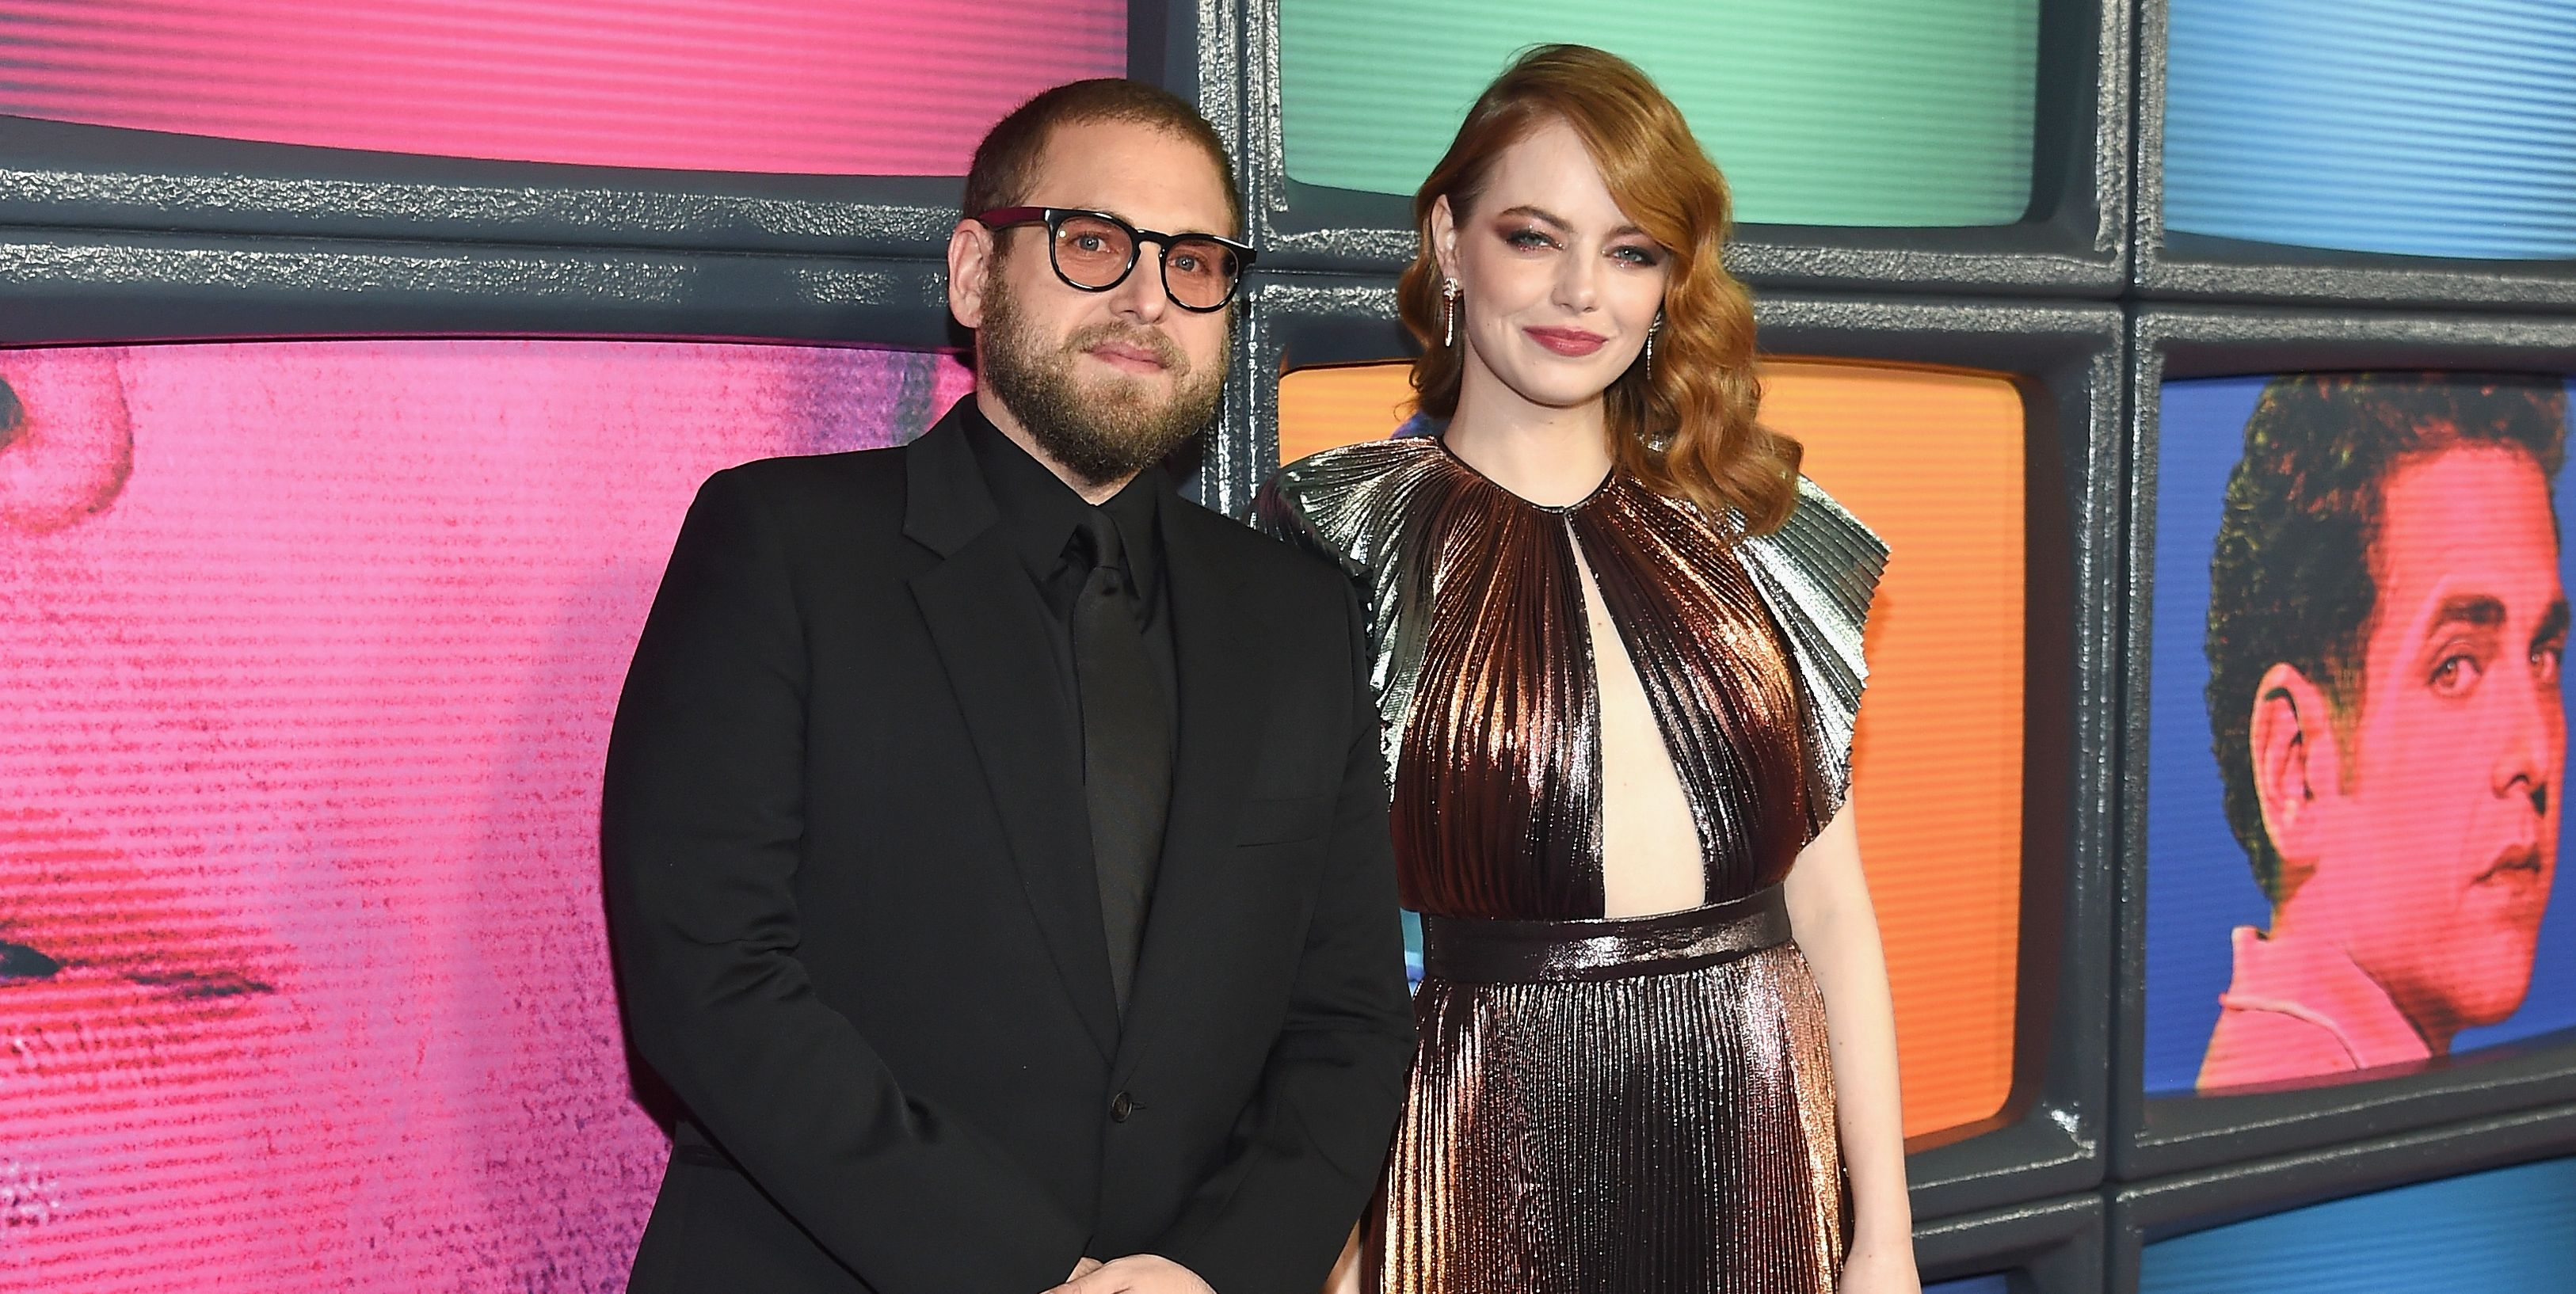 On September 20, a crowd including Emma Stone, Jonah Hill, Justin Theroux, and Cary Joji Fukunaga gathered at Manhattan's Center 415 to fête the premiere of the new series Maniac , which will air on Netflix beginning September 21. The series, created by Patrick Somerville and directed by Fukunaga—who was just tapped to helm the next James Bond film—follows strangers drawn together by a mysterious pharmaceutical trial.